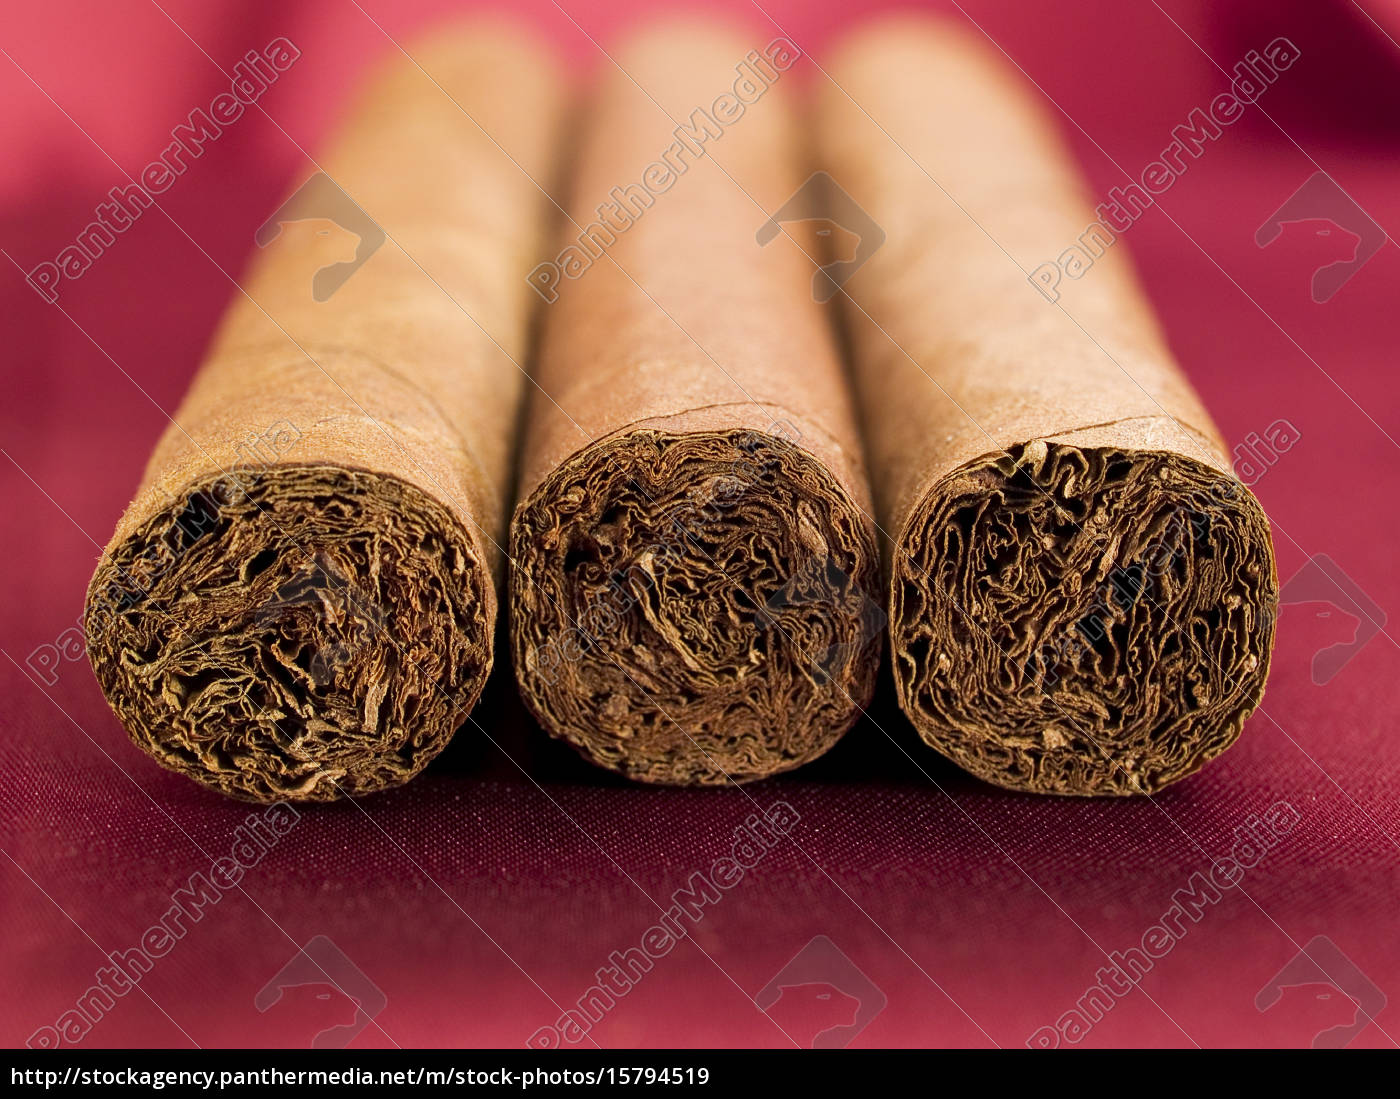 three, cigars, on, red, satin, three, cigars - 15794519